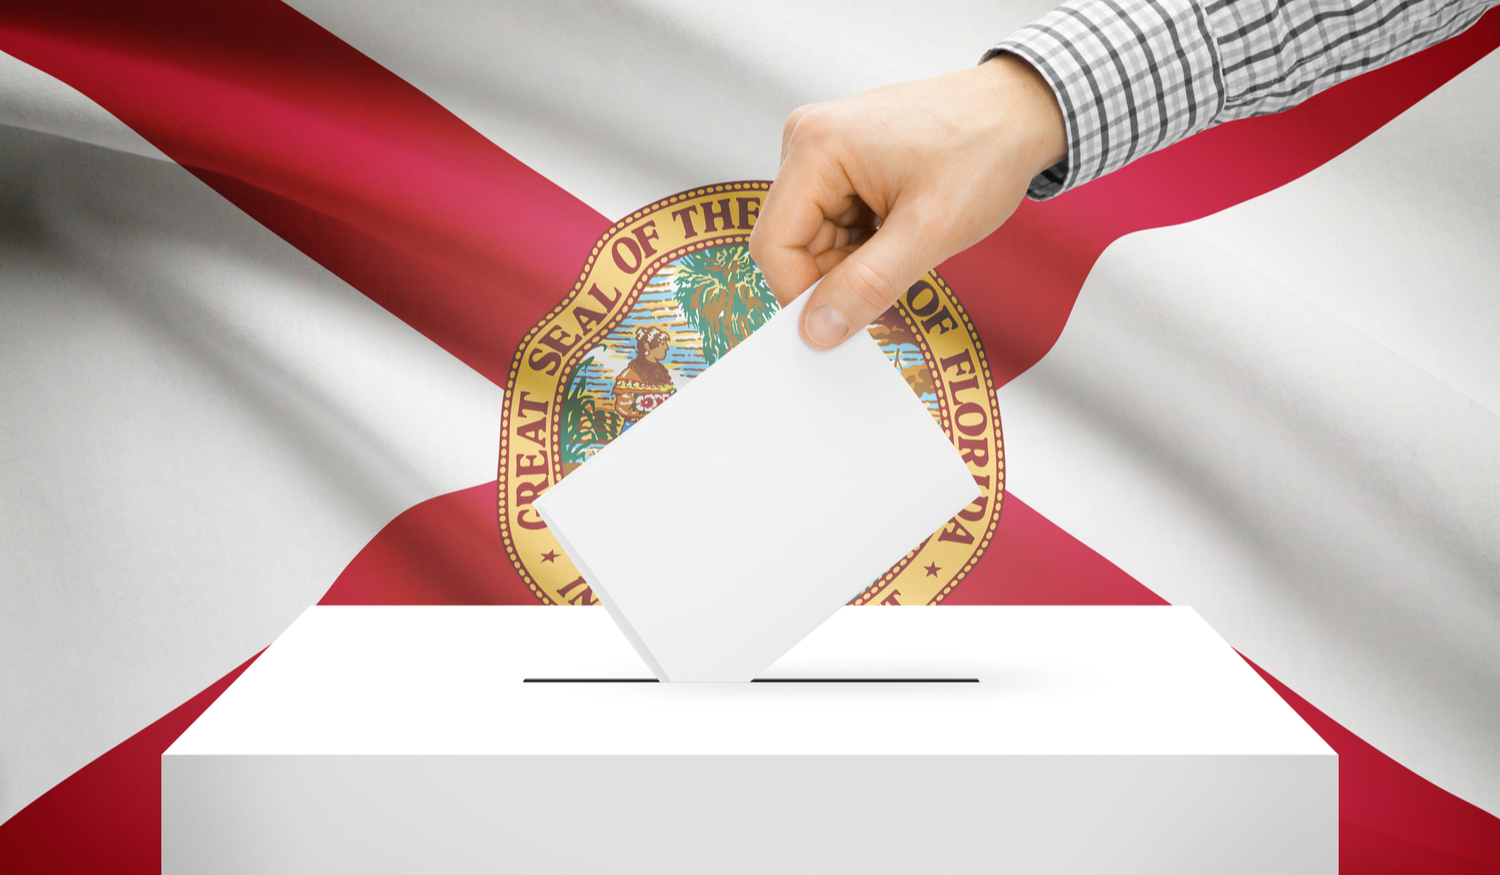 Florida Flag and voting hand